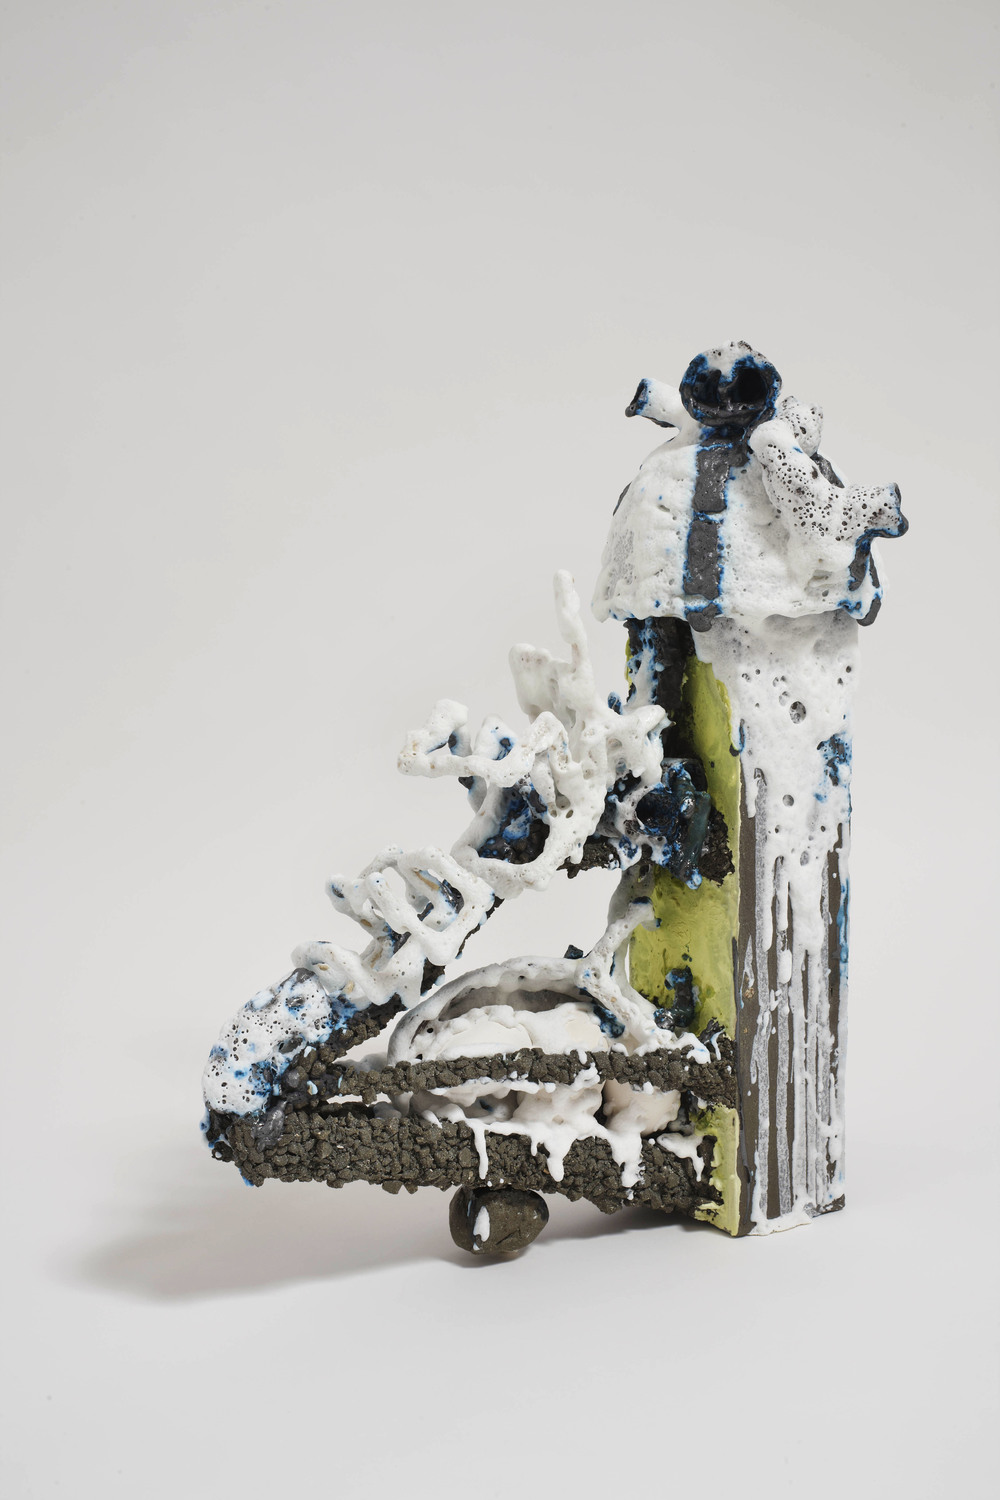 Paul Krause   Untitled (slide)  , 2012  Ceramic  23 x 22 x 8 inches